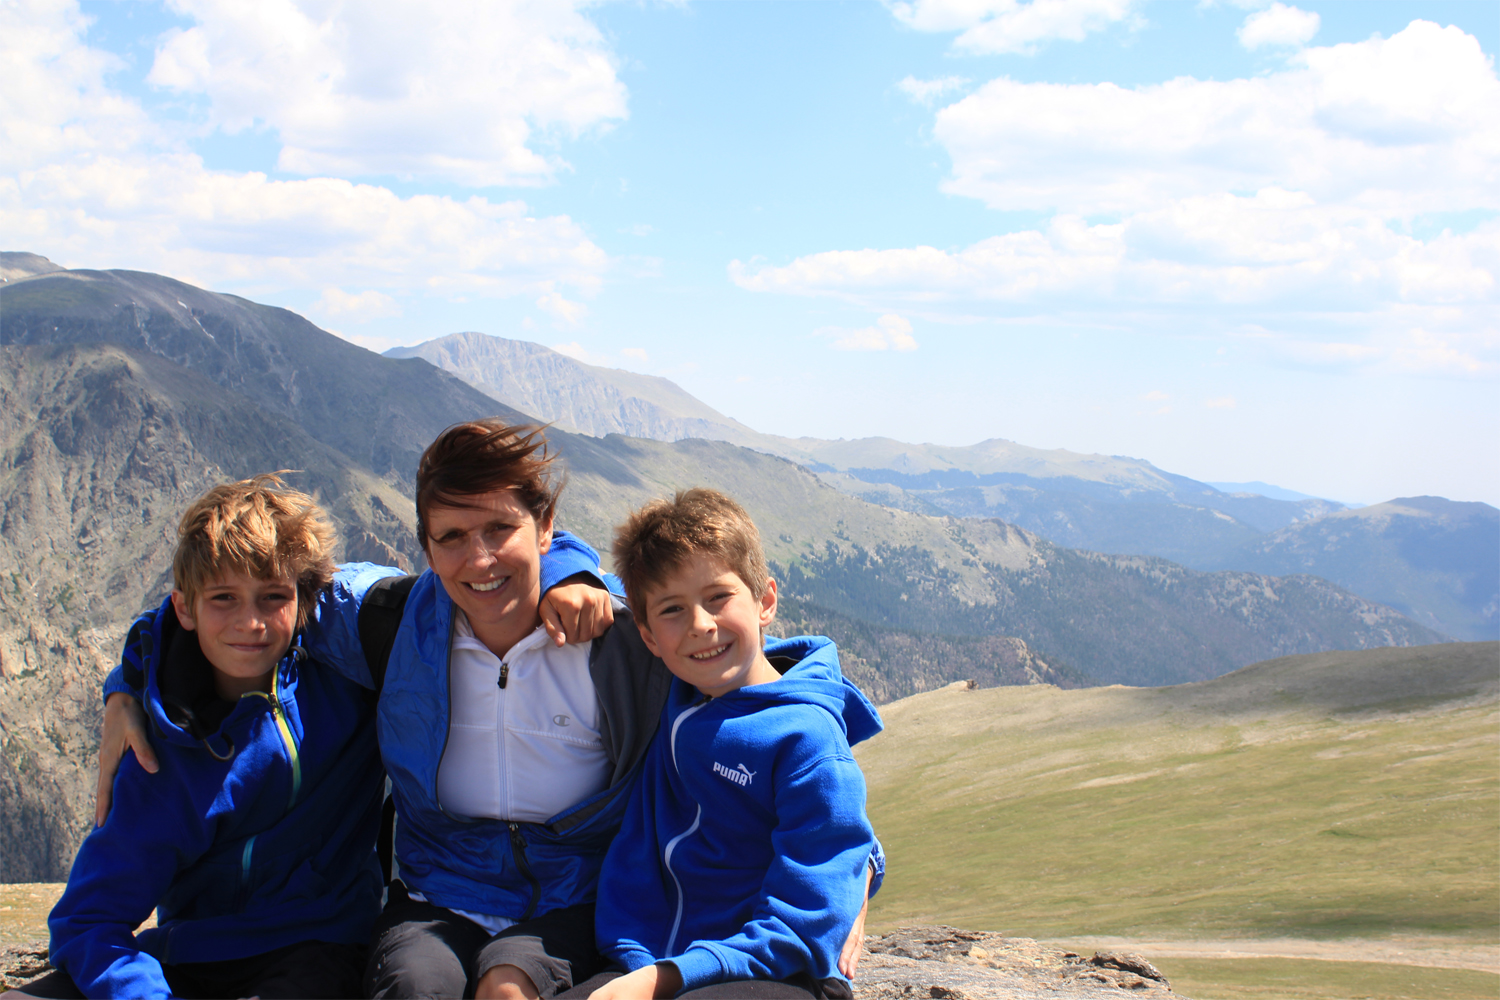 2012 – Rocky Mountain National Park et Black Canyon of the Gunnison National Park